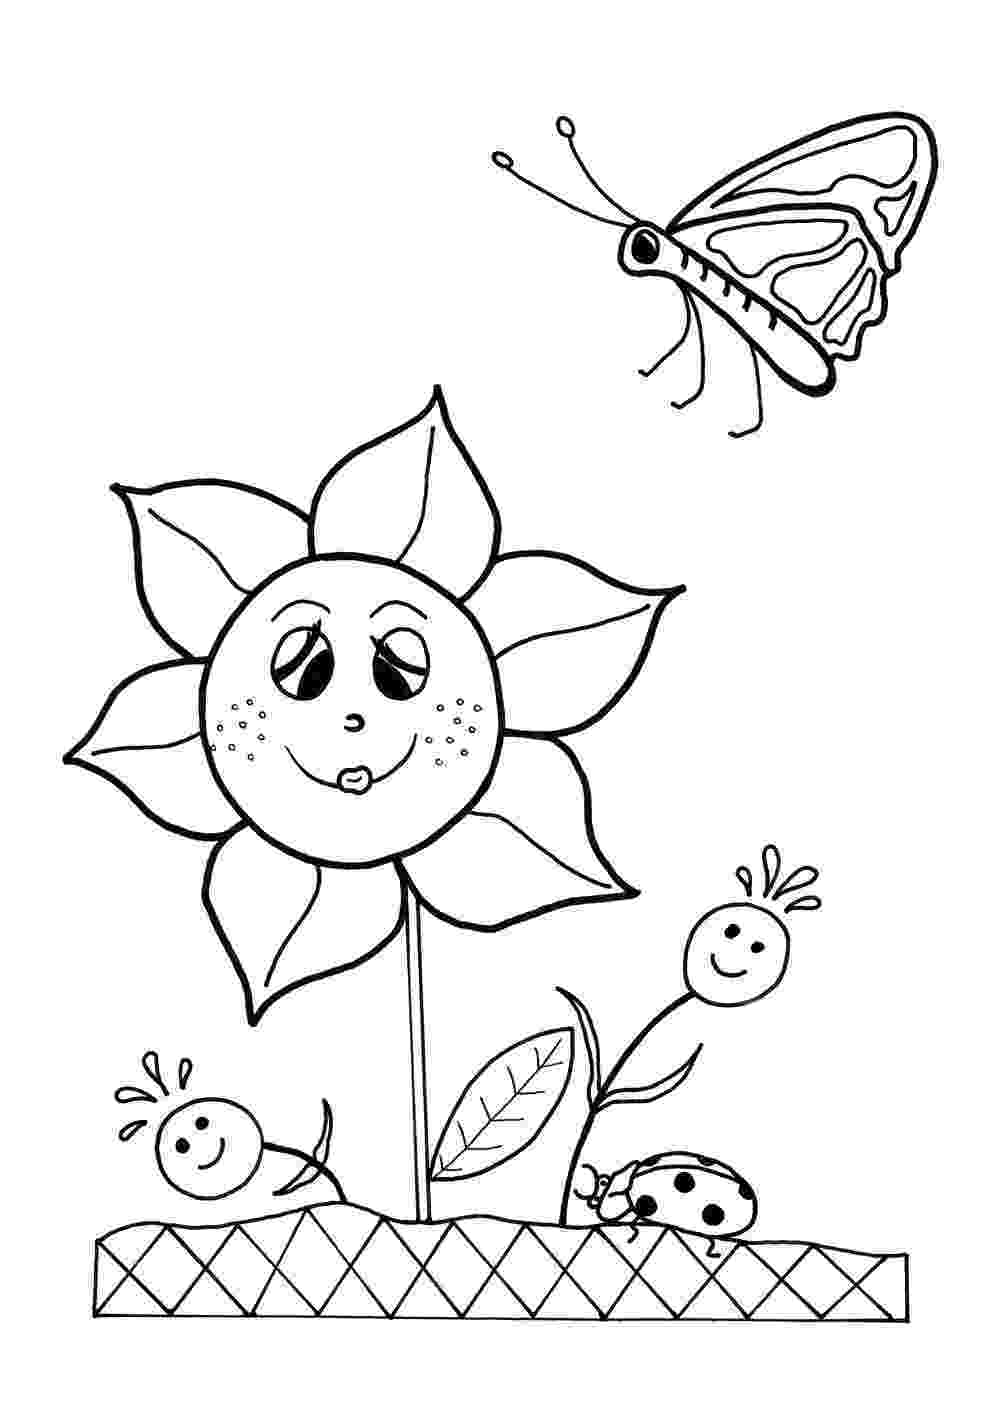 flower coloring pages spring flower coloring pages to download and print for free pages coloring flower